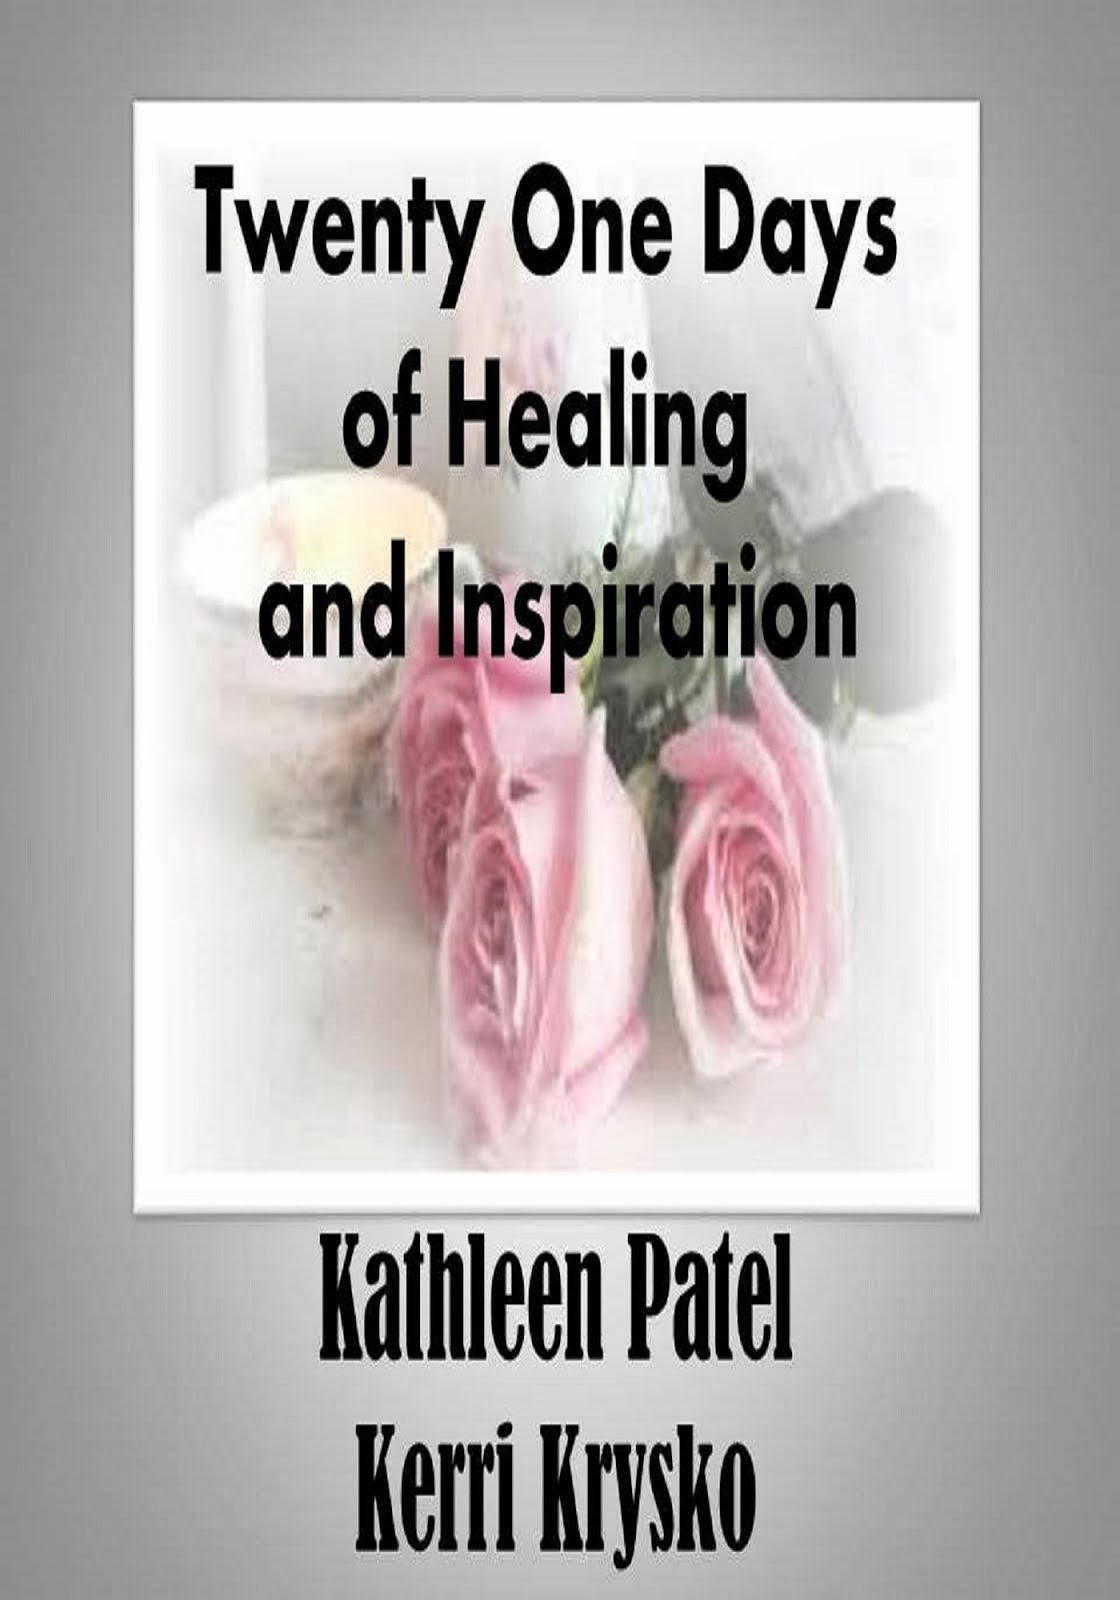 Twenty One Days of Healing and Inspiration